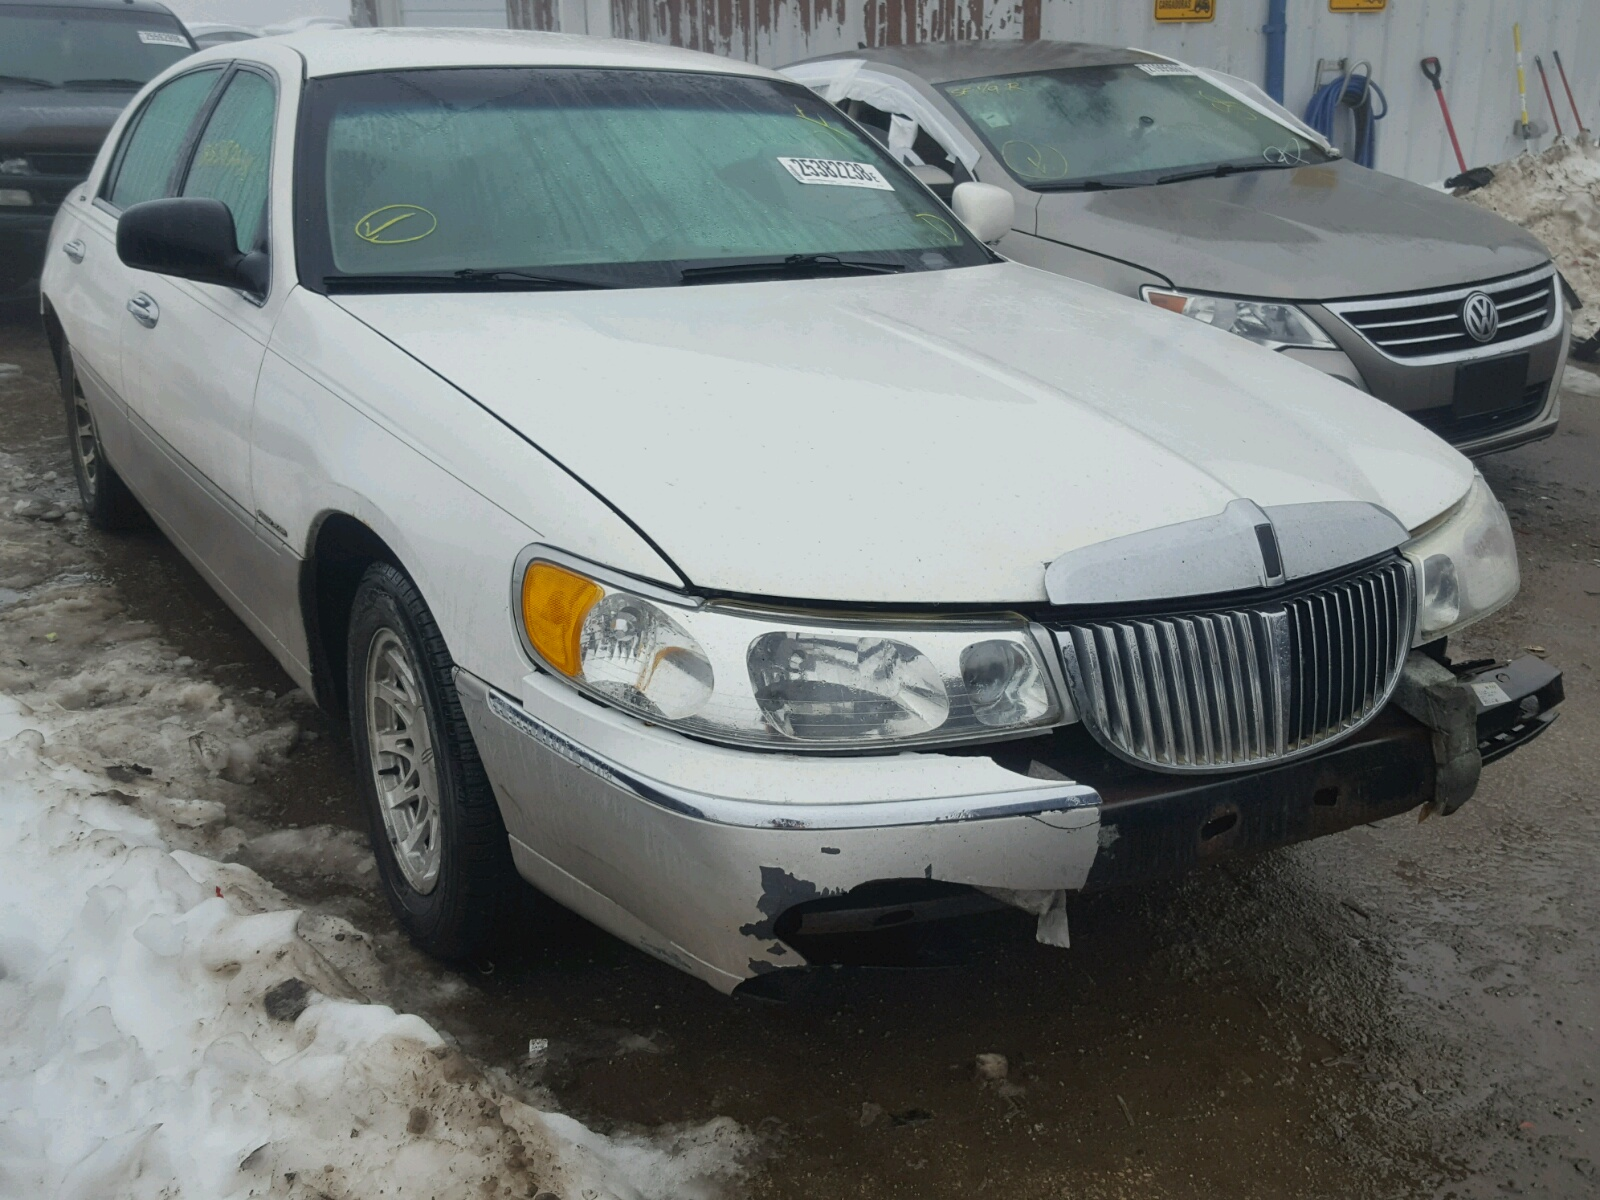 Auto Auction Ended On Vin 1lnfm97v5wy698020 1998 Lincoln Continenta In Md Baltimore